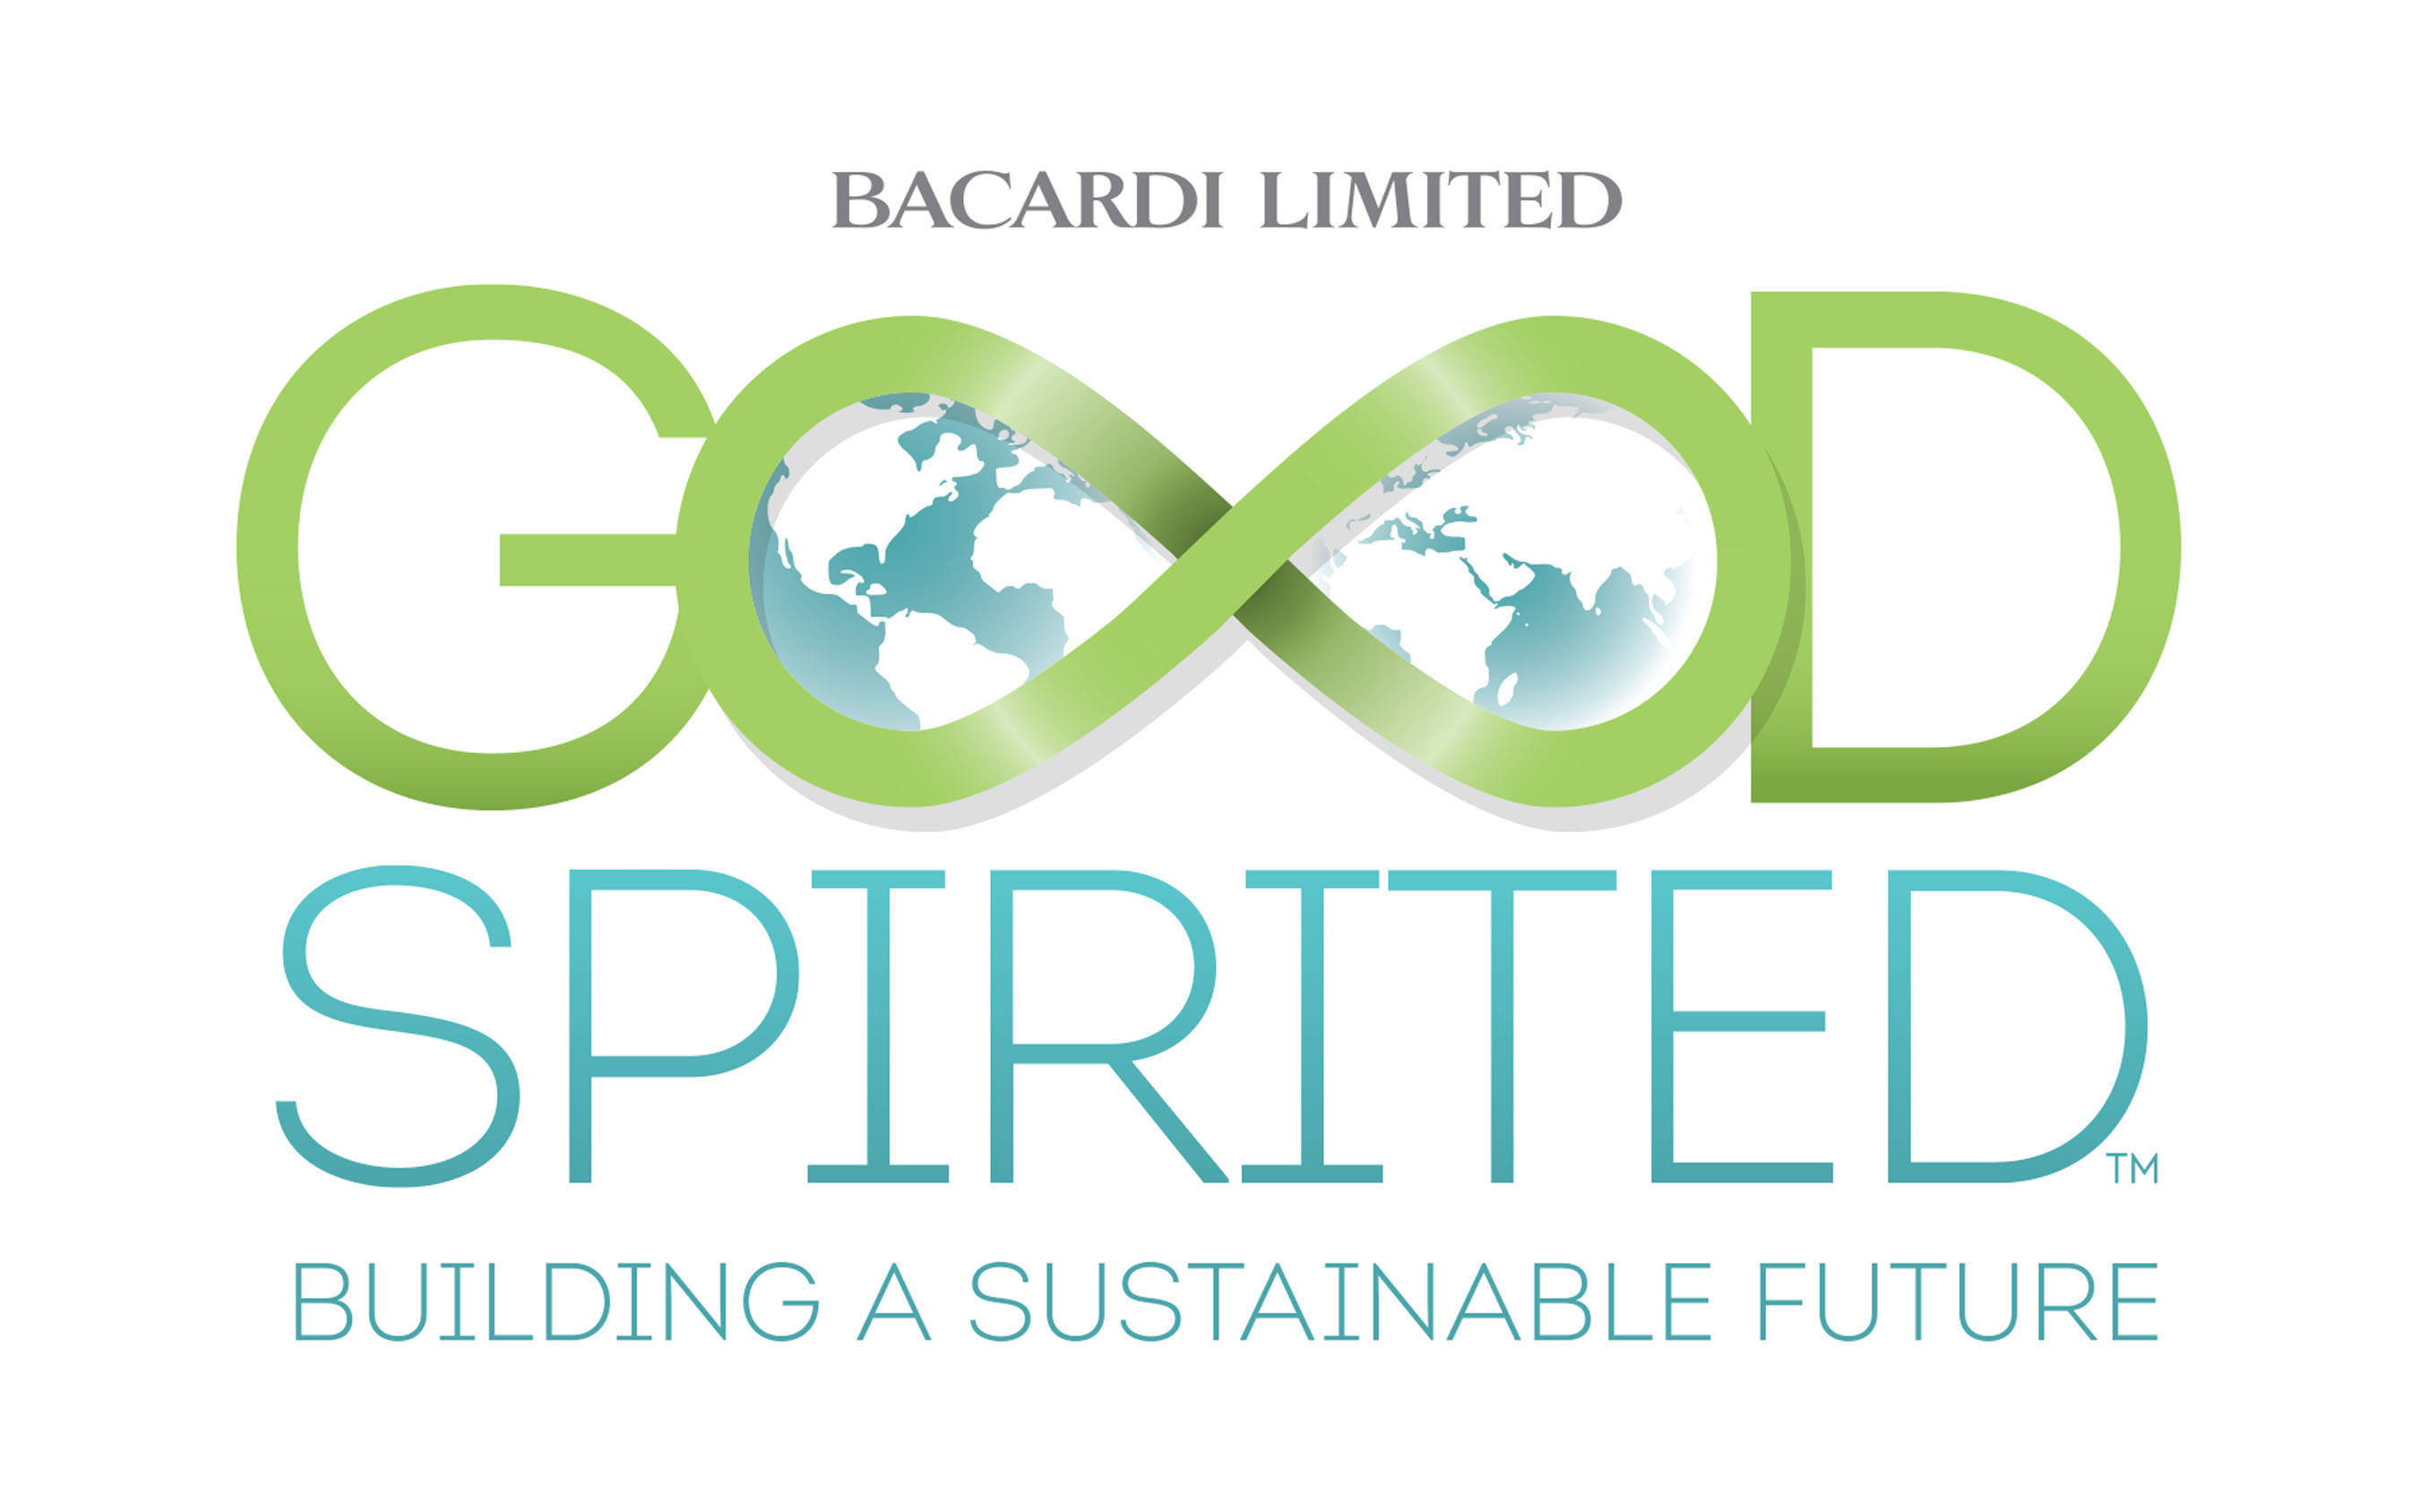 Bacardi Limited, the largest privately held spirits company in the world, sets a bold new course for a more ...